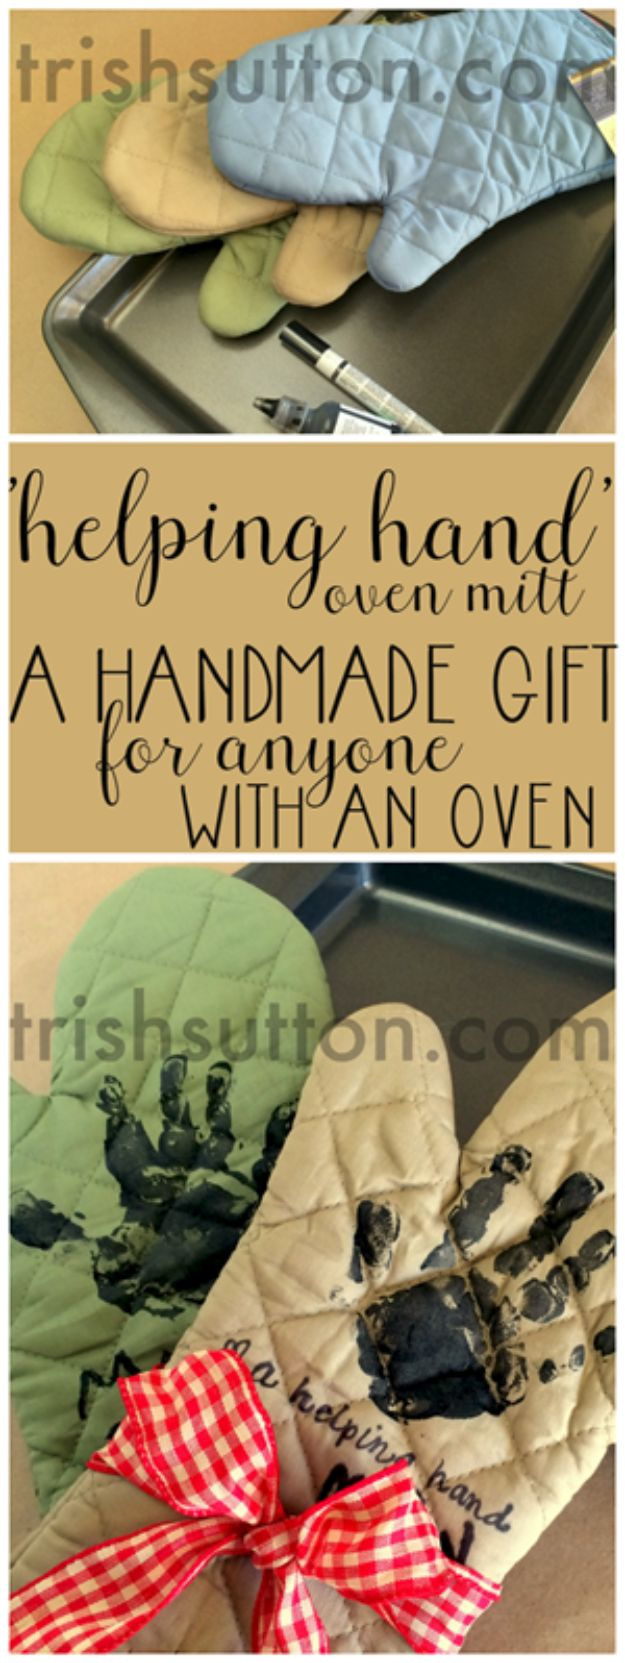 Creative DIY Mothers Day Gifts Ideas - A Helping Hand Mother's Day Gift - Thoughtful Homemade Gifts for Mom. Handmade Ideas from Daughter, Son, Kids, Teens or Baby - Unique, Easy, Cheap Do It Yourself Crafts To Make for Mothers Day, complete with tutorials and instructions #mothersday